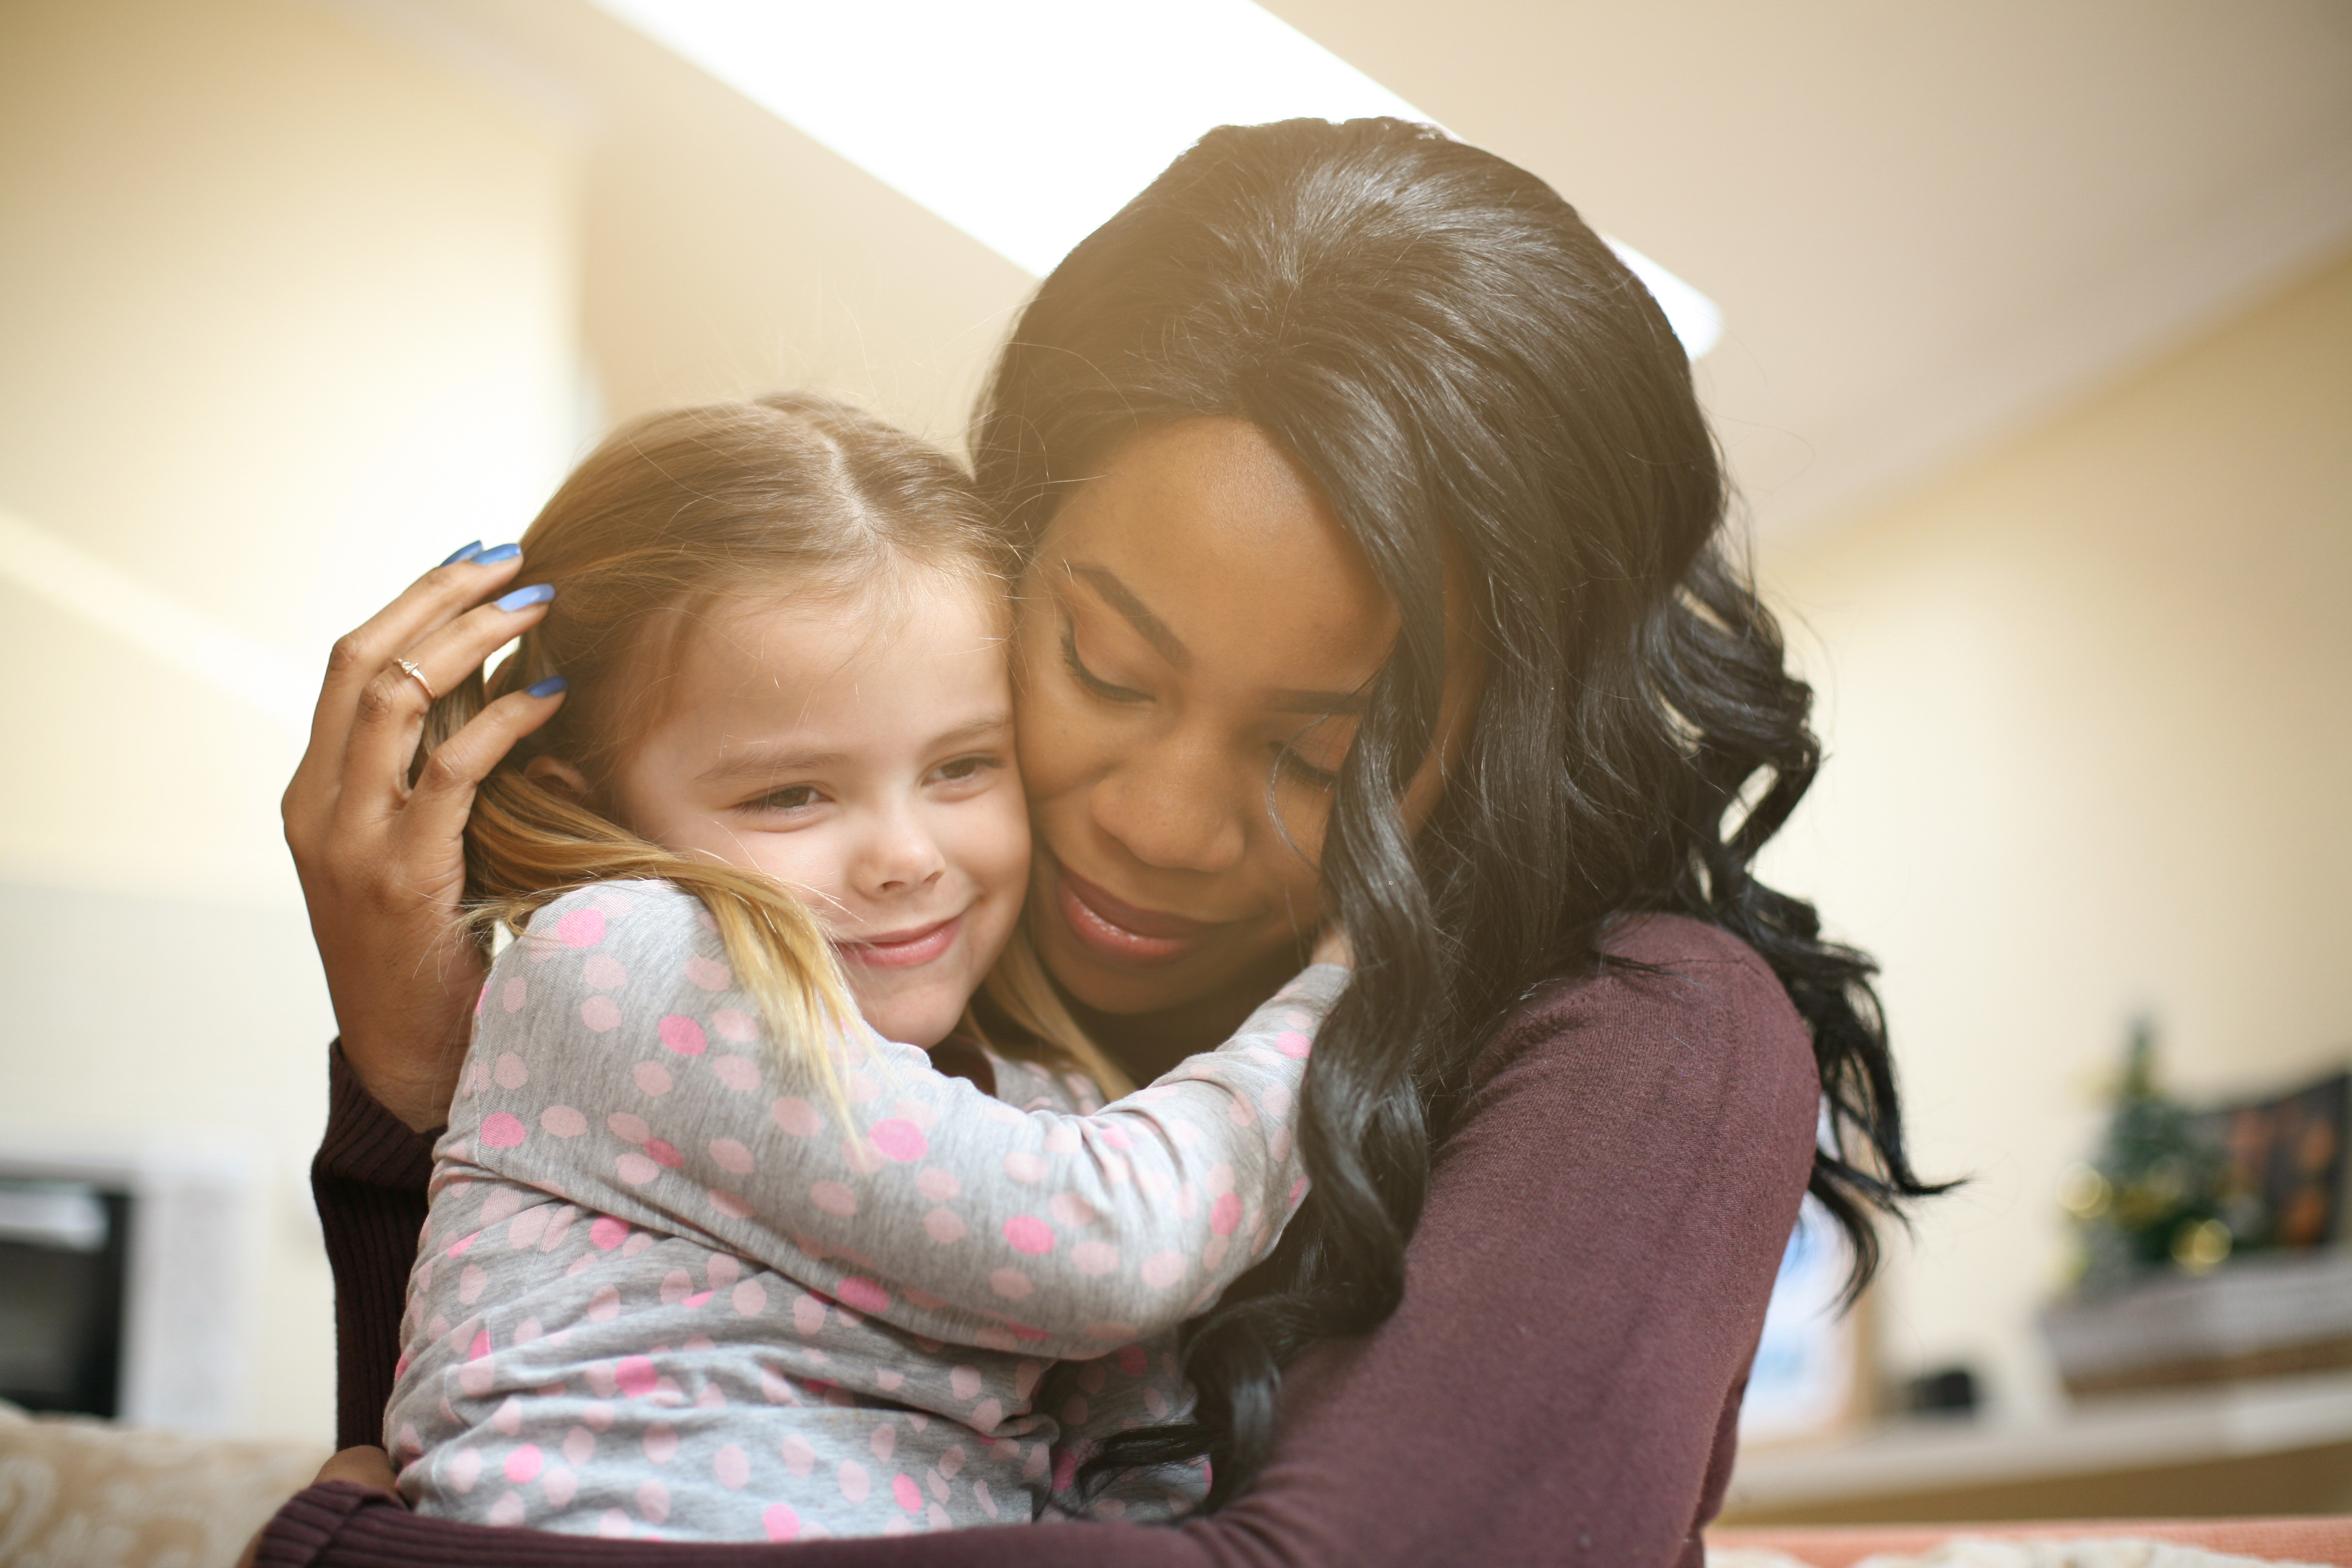 the questions of adopted children Adoption is a leap of faith under any circumstance, but it is especially so when adopting a toddler, preschooler or school aged child because they have had experiences before coming to your home.